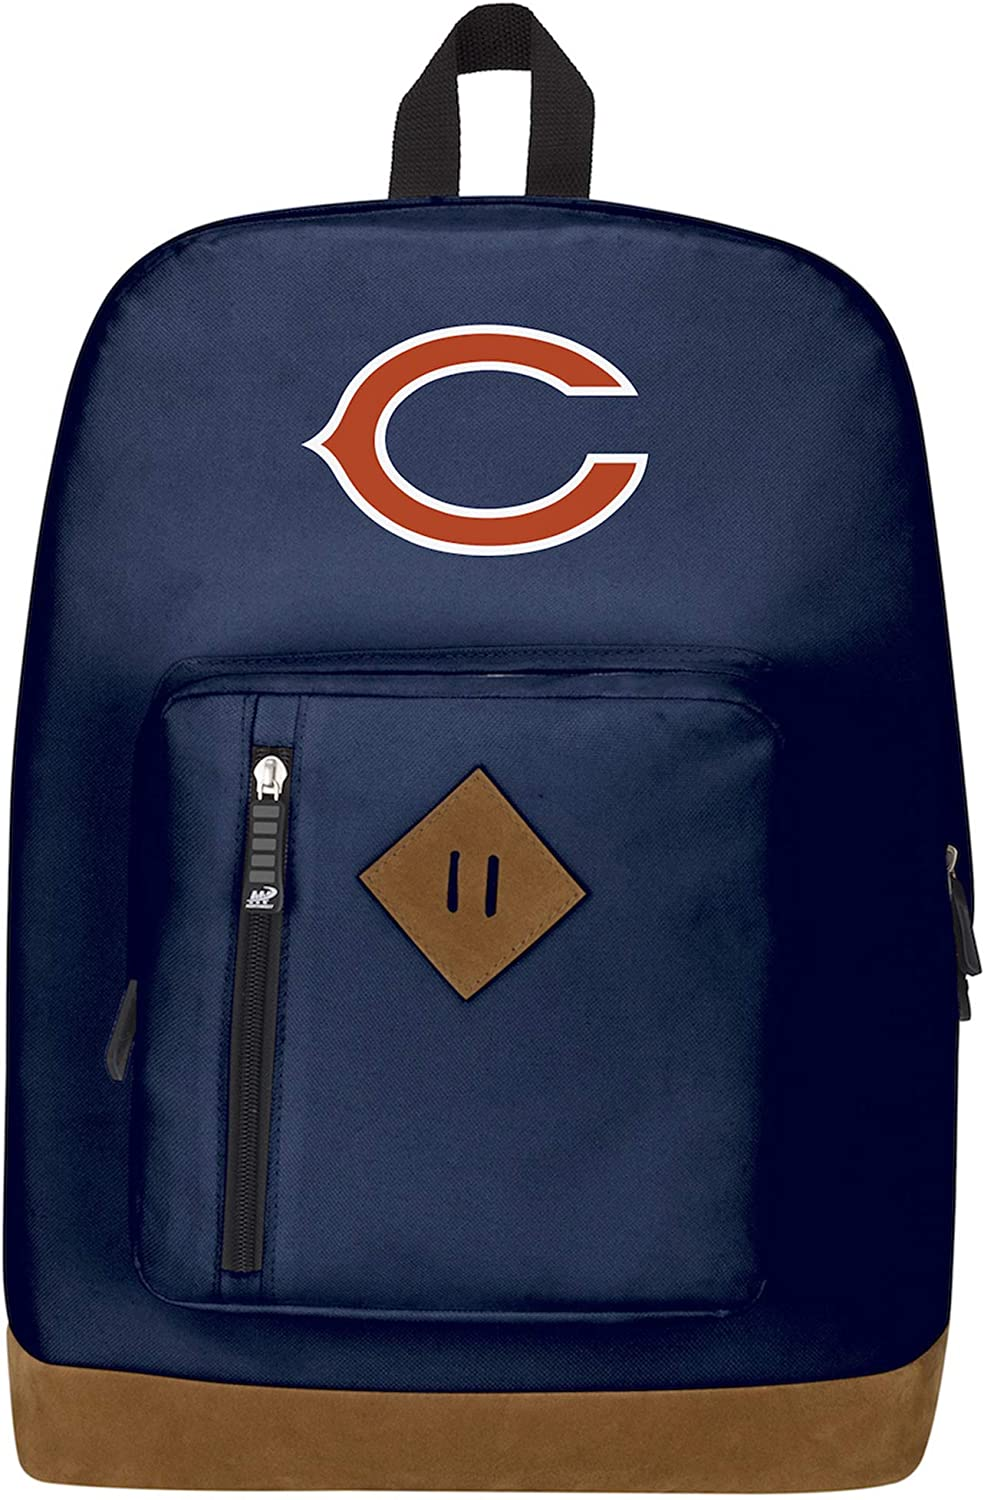 Officially Licensed NFL Chicago Bears Playbook Backpack 18 x 5 x 13 Blue